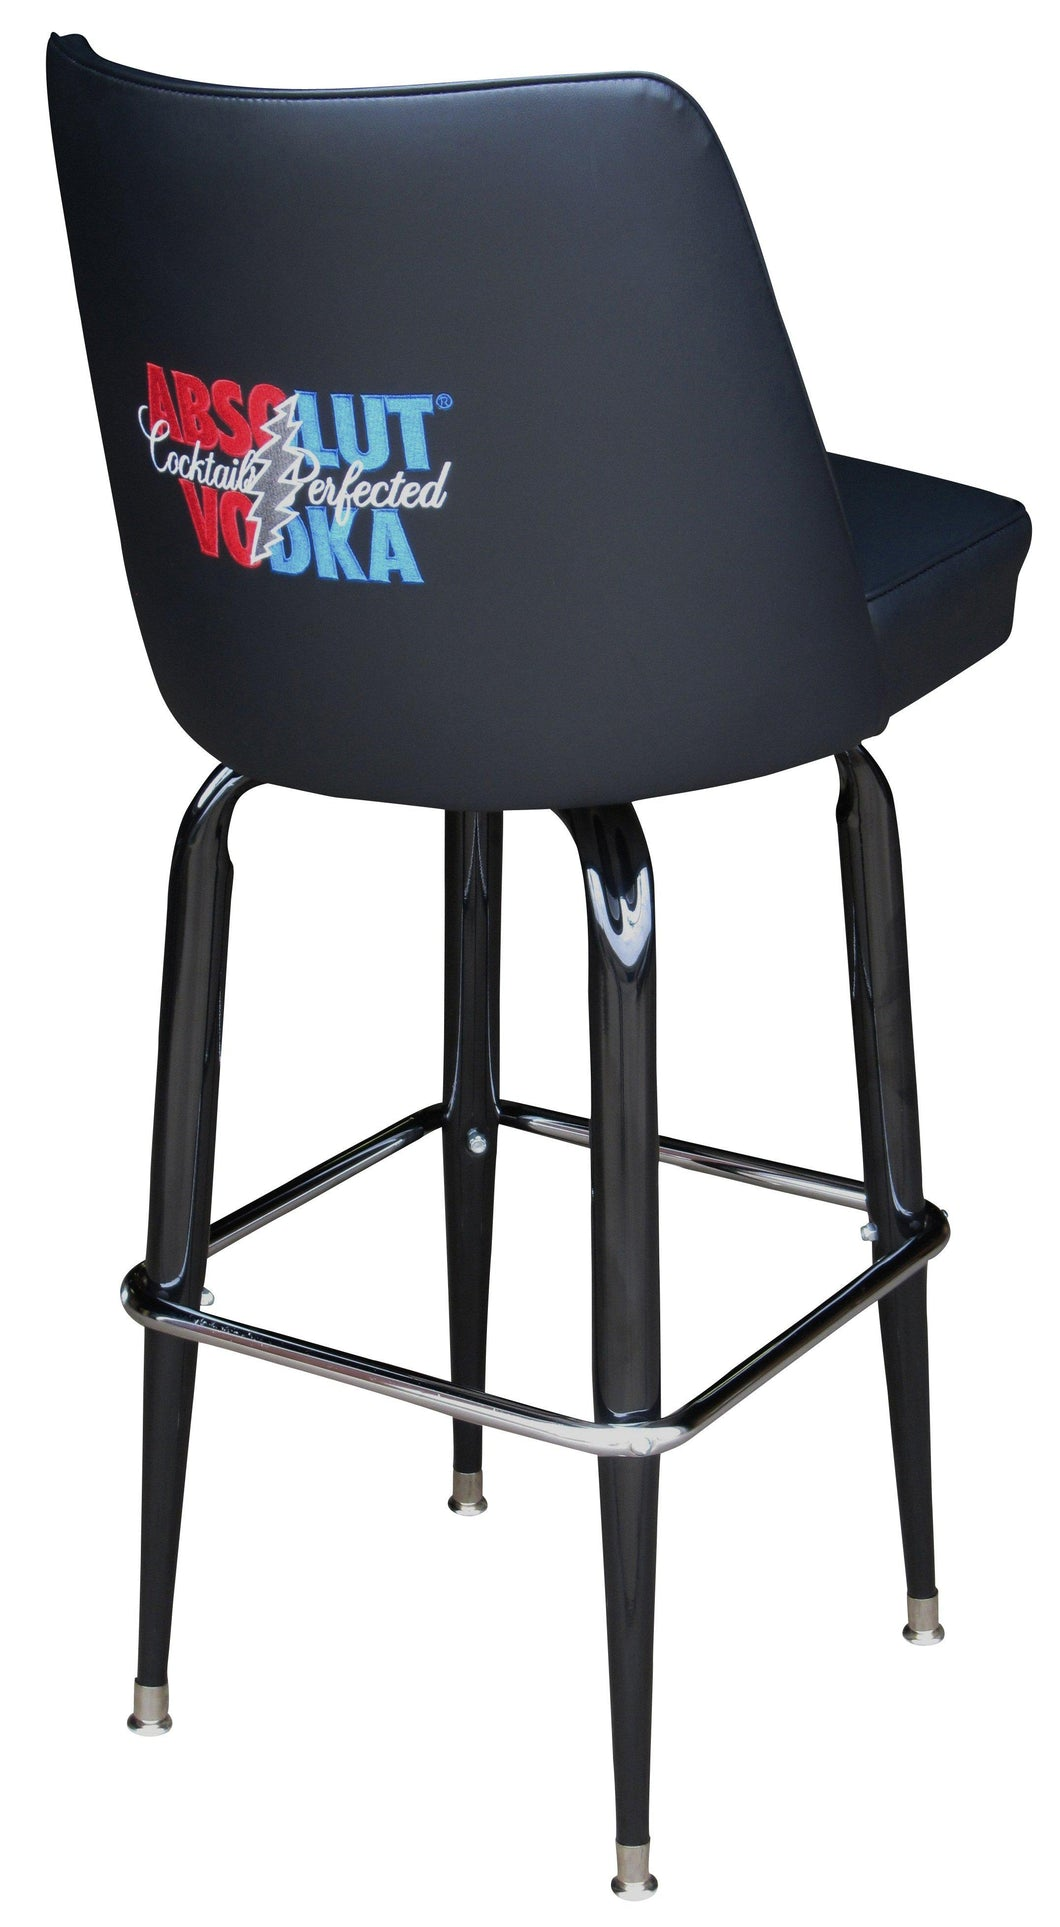 Bar Stool With Embroidered Back-Richardson Seating